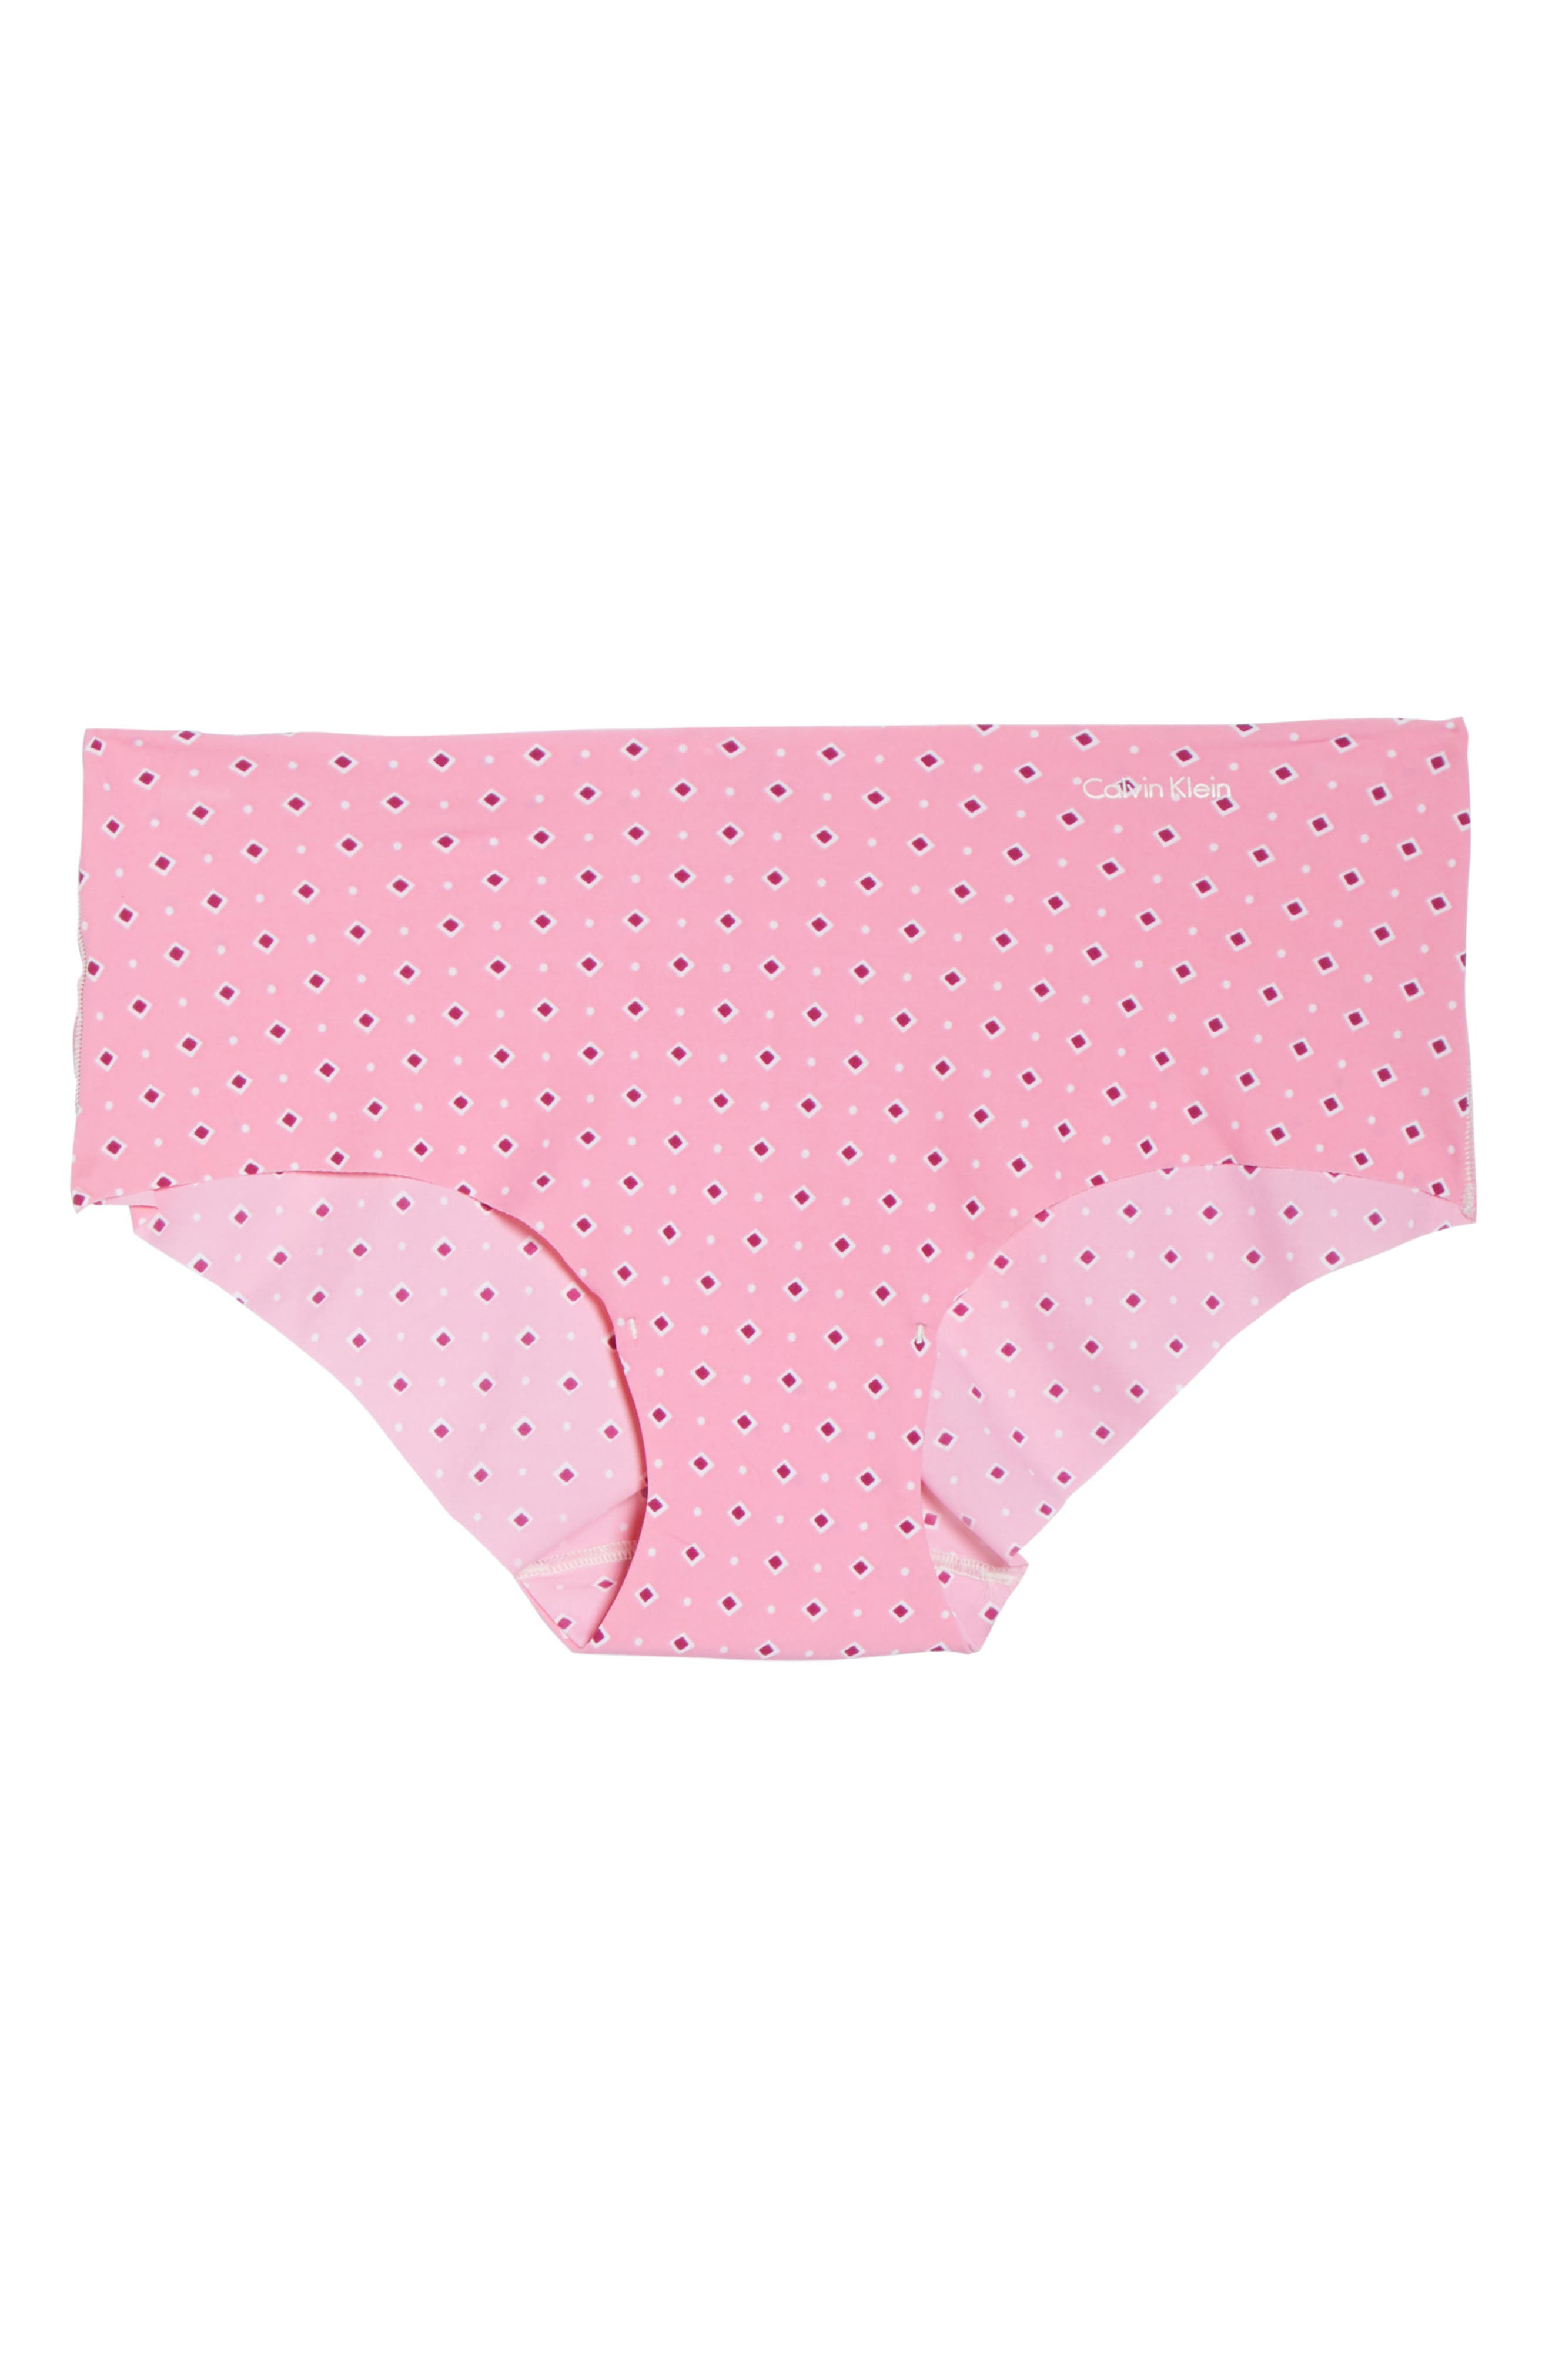 Invisibles Hipster Briefs,                             Alternate thumbnail 6, color,                             SHADOW DIAMOND